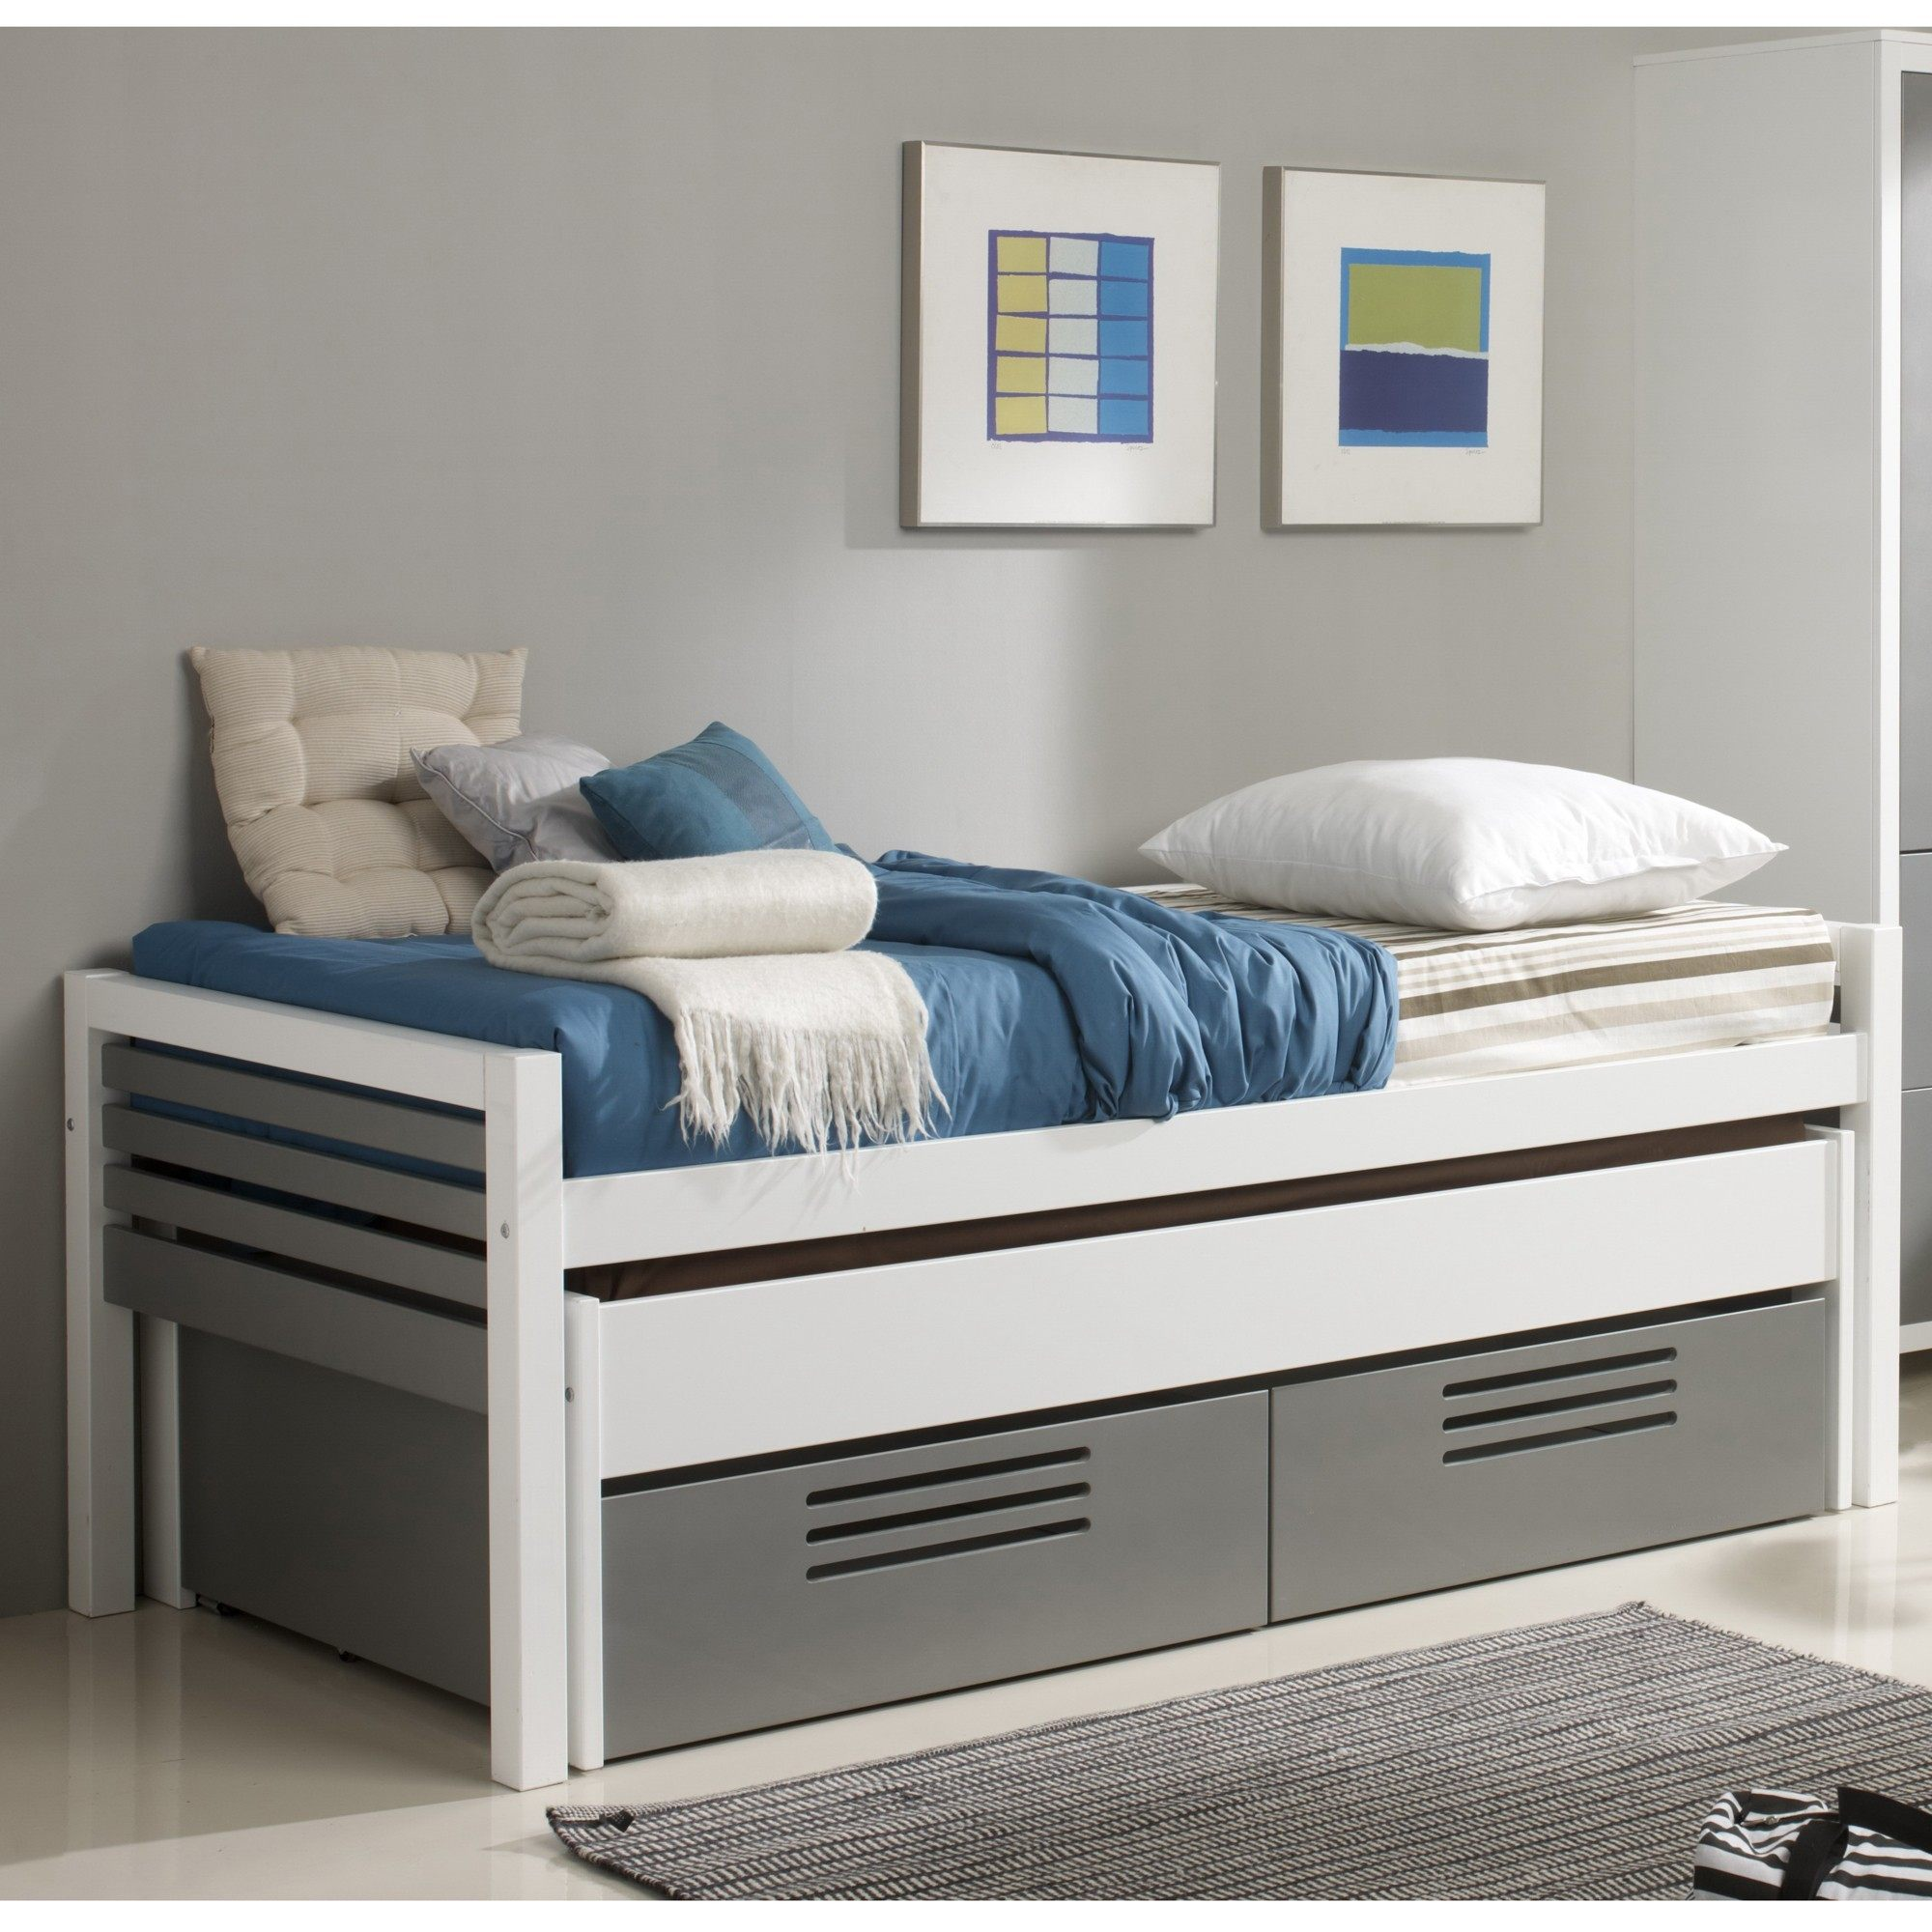 Lit Coffre 160x200 Ikea De Luxe Banc De Lit but Beautiful but Lit 27 sommier Electrique Ikea Coffre